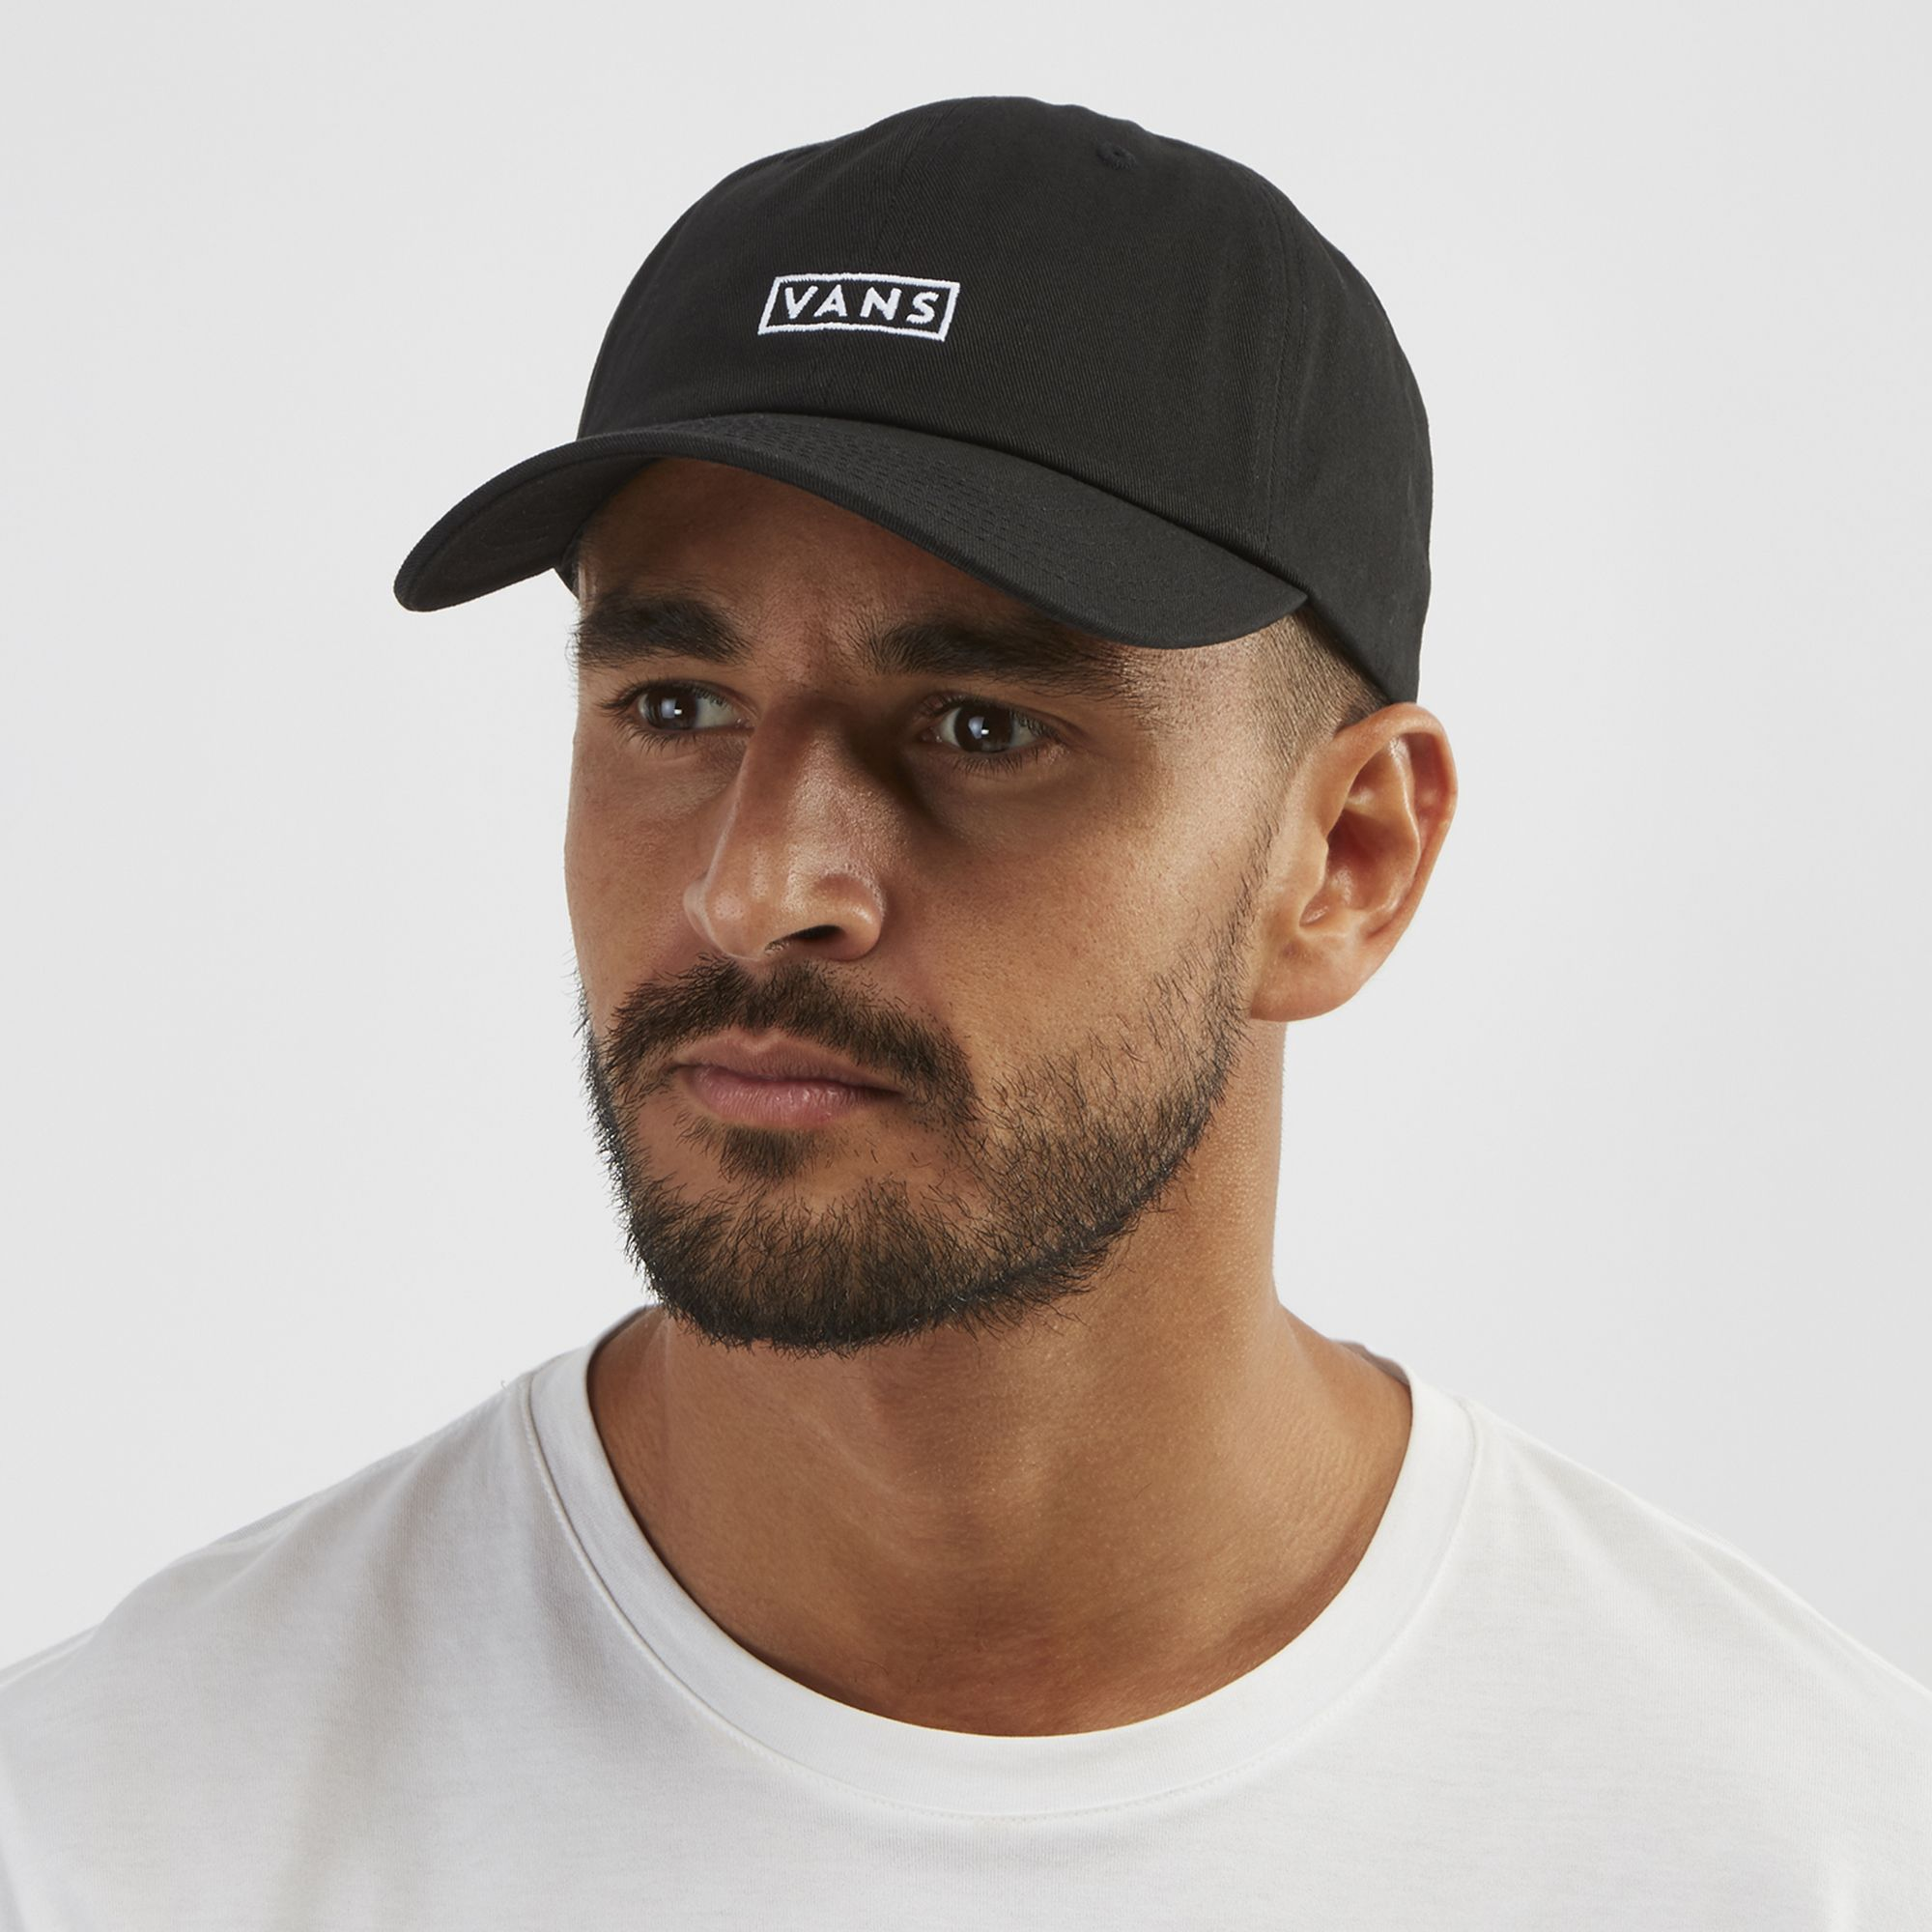 Vans Curved Bill Jockey Hat - Black 51147f1395